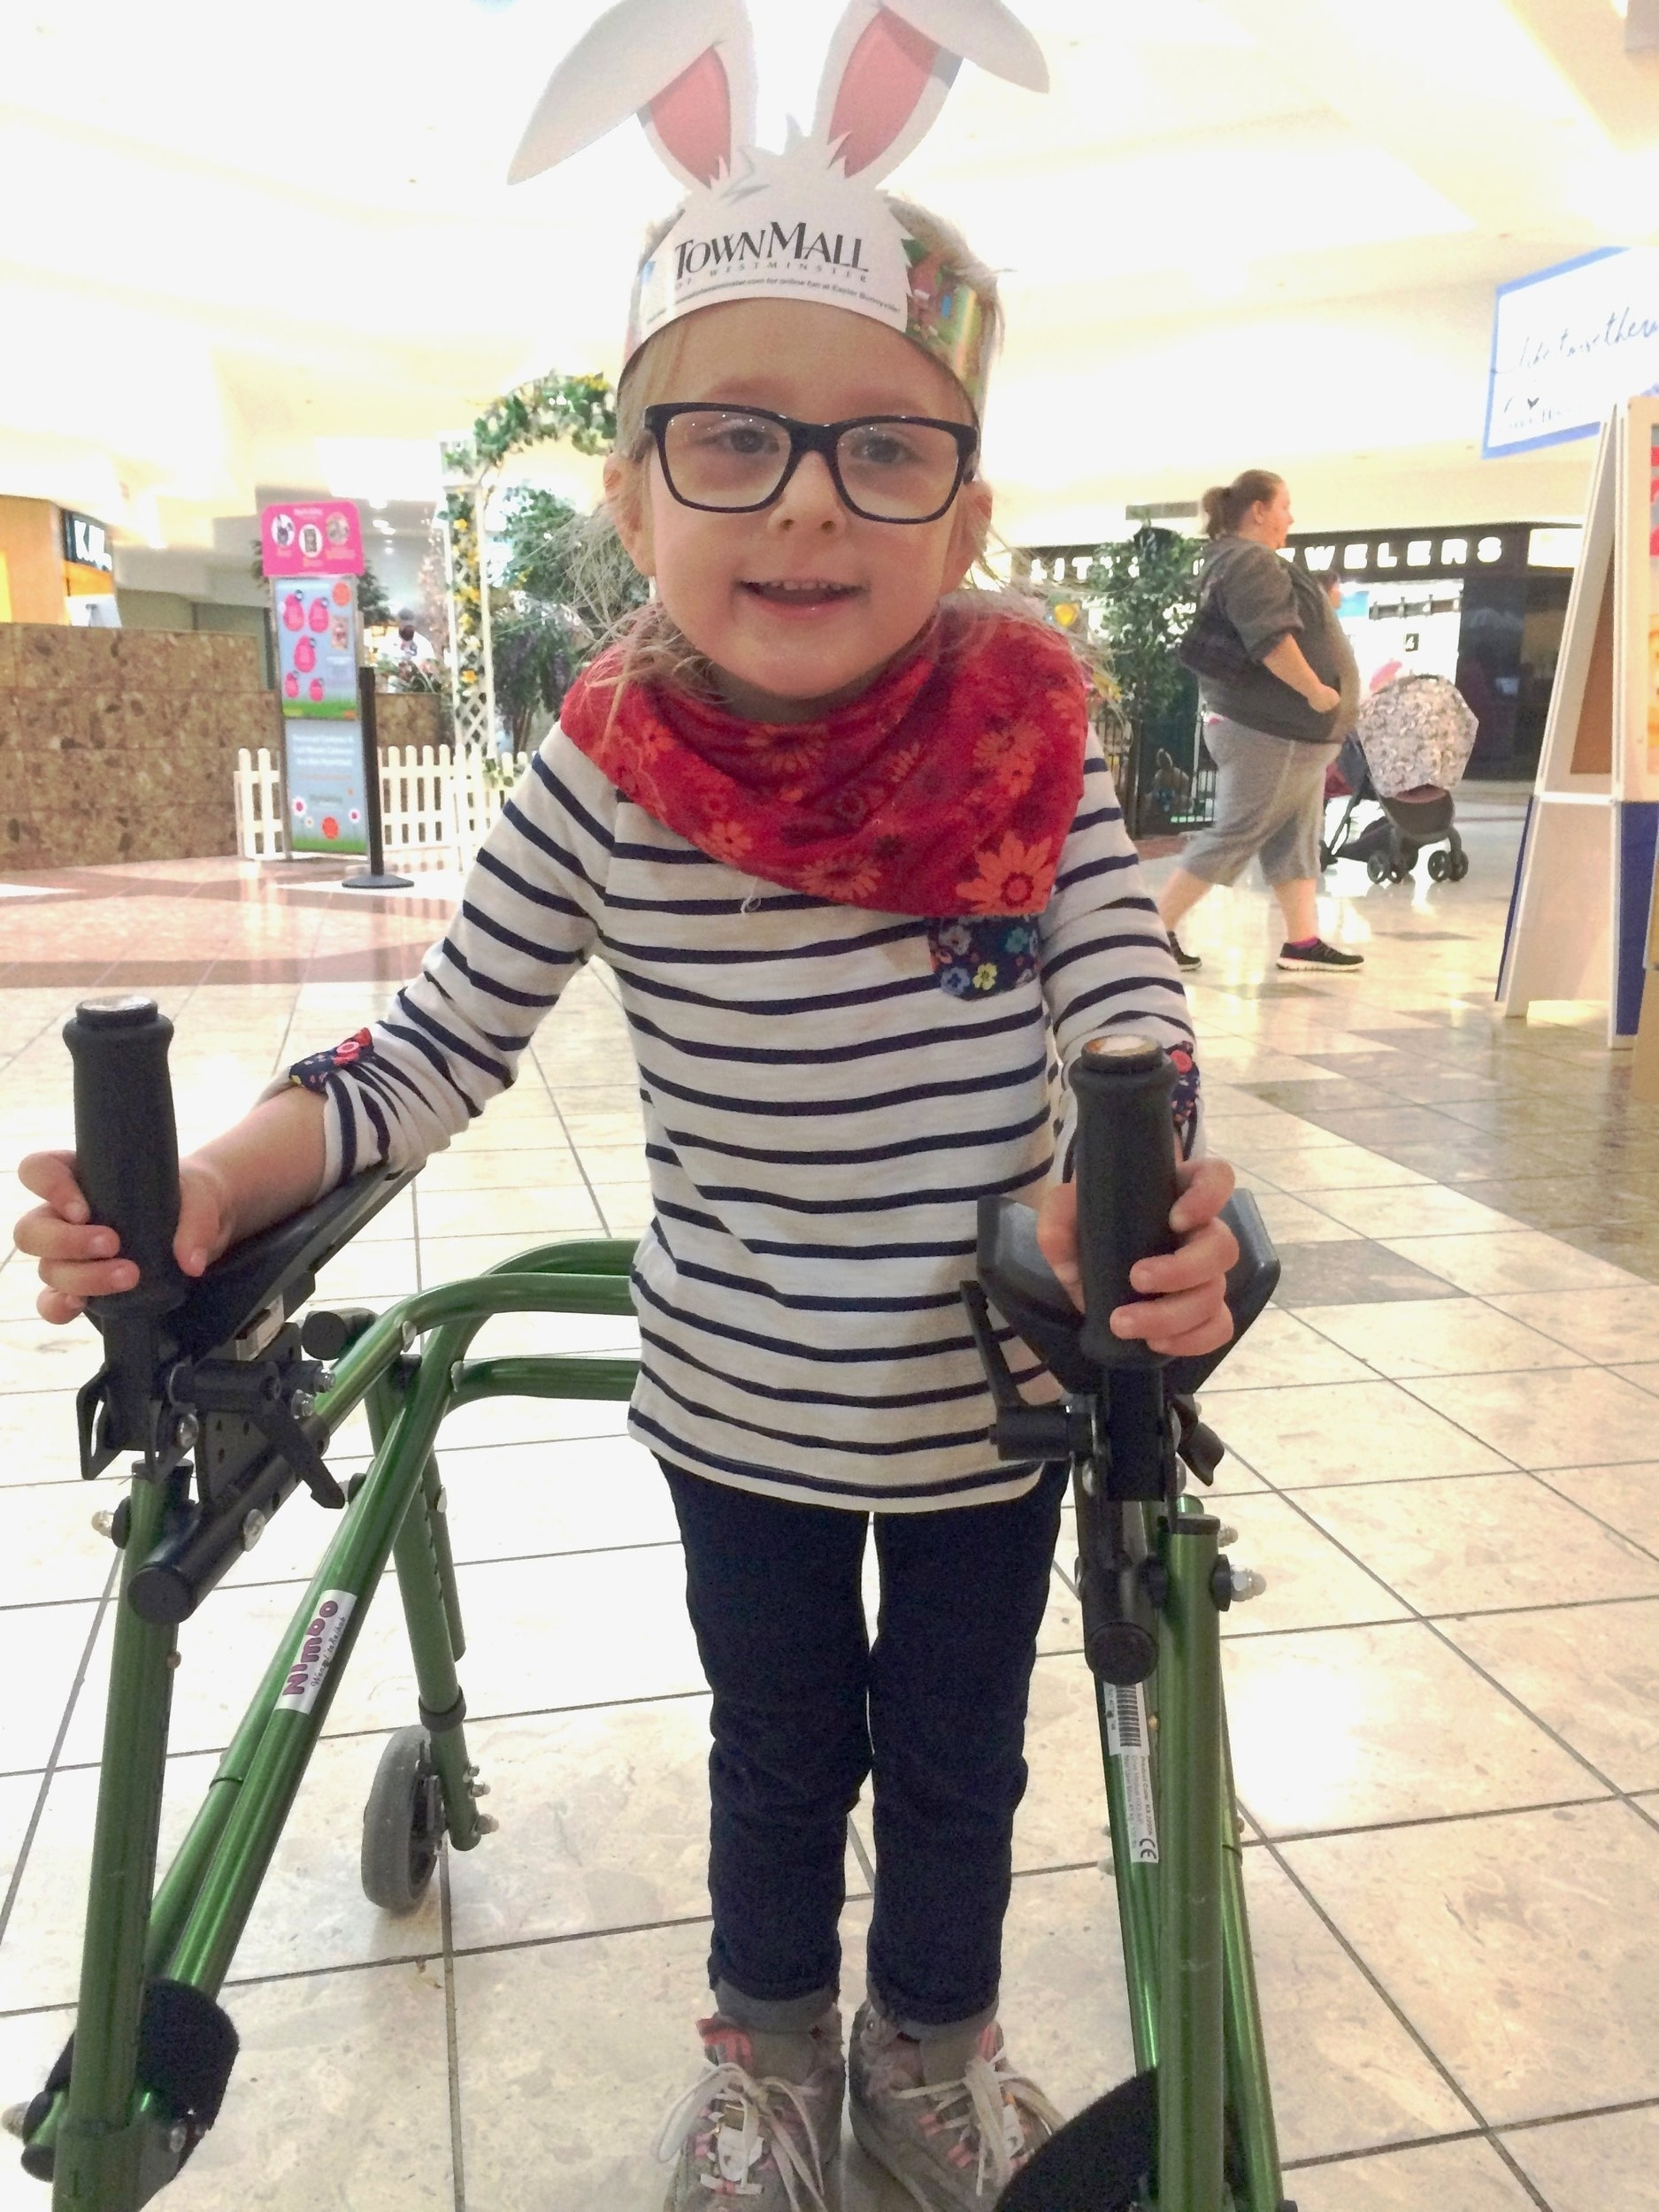 Grace's Story - Help a child like Grace! Grace is a vibrant, determined 5 year-old child who has cerebral palsy (CP) and quadriplegia, which is a great deal to manage at her age. Fortunately, she can stand with the help of a walker, which helps her go where she wants to be. But she had a PROBLEM. The wheels get stuck sometimes and she can't move (think of a shopping cart when the wheels go wrong) - very frustrating! Her parents want her to be as included and free as possible, and so asked V-LINC to modify the walker so Grace can keep moving and manage even a rough surface when she is outside. Her walker's wheels were only able to spin 180 degrees - just enough to get stuck! A V-LINC volunteer found the